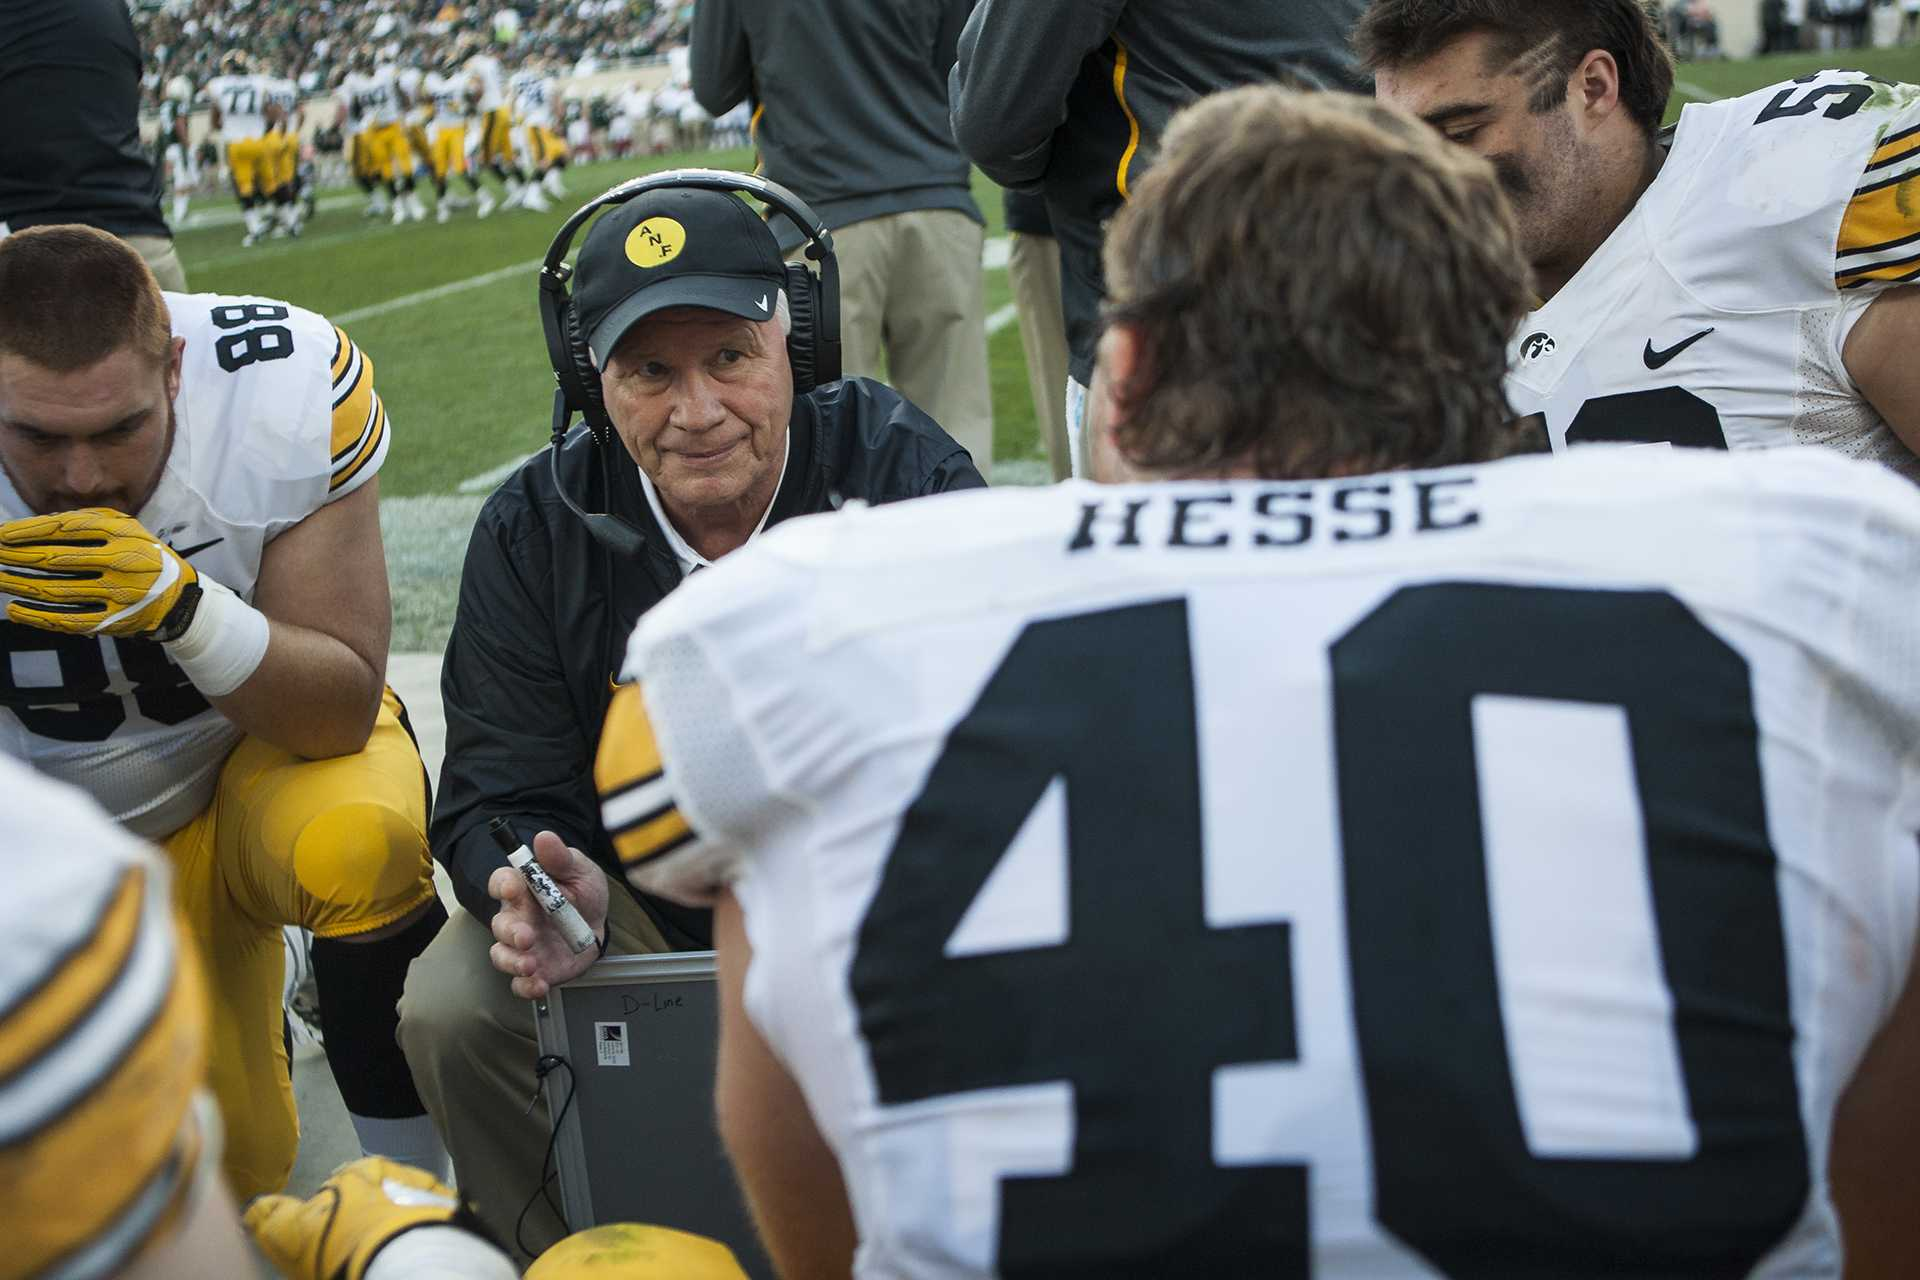 Iowa defensive line coach Reese Morgan talks with the Iowa defense during the game between Iowa and Michigan State at Spartan Stadium on Saturday, Sept. 30, 2017. The Hawkeyes fell to the Spartans with a final score of 10-17. (Ben Smith/The Daily Iowan)